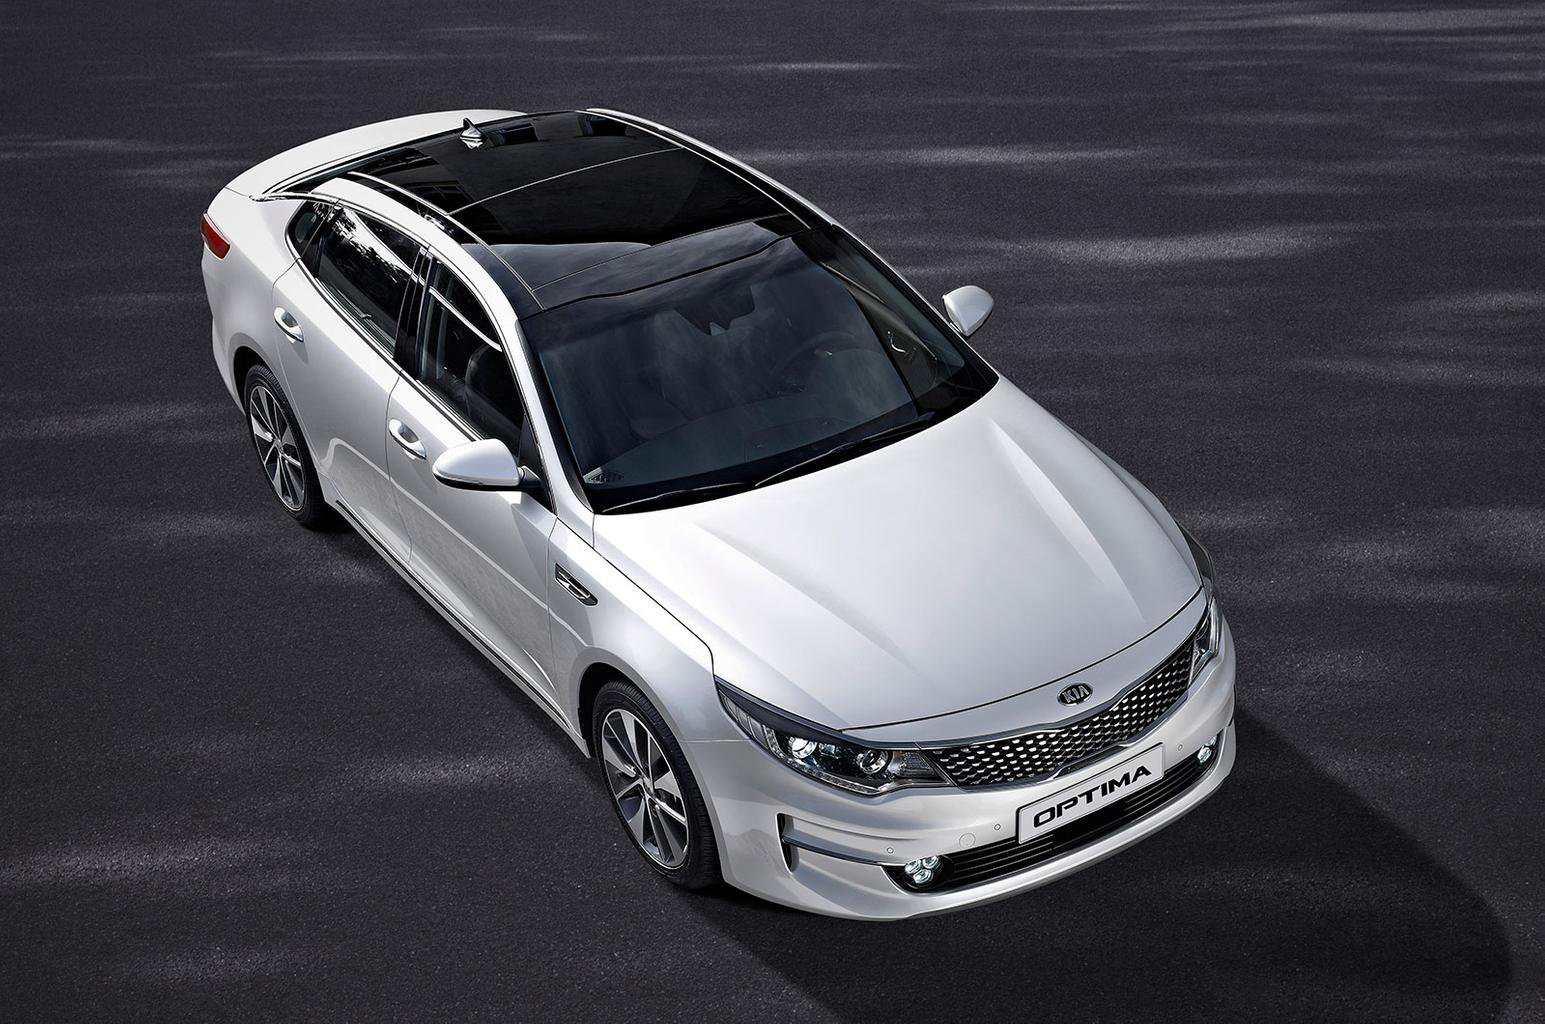 2015 Kia Optima revealed